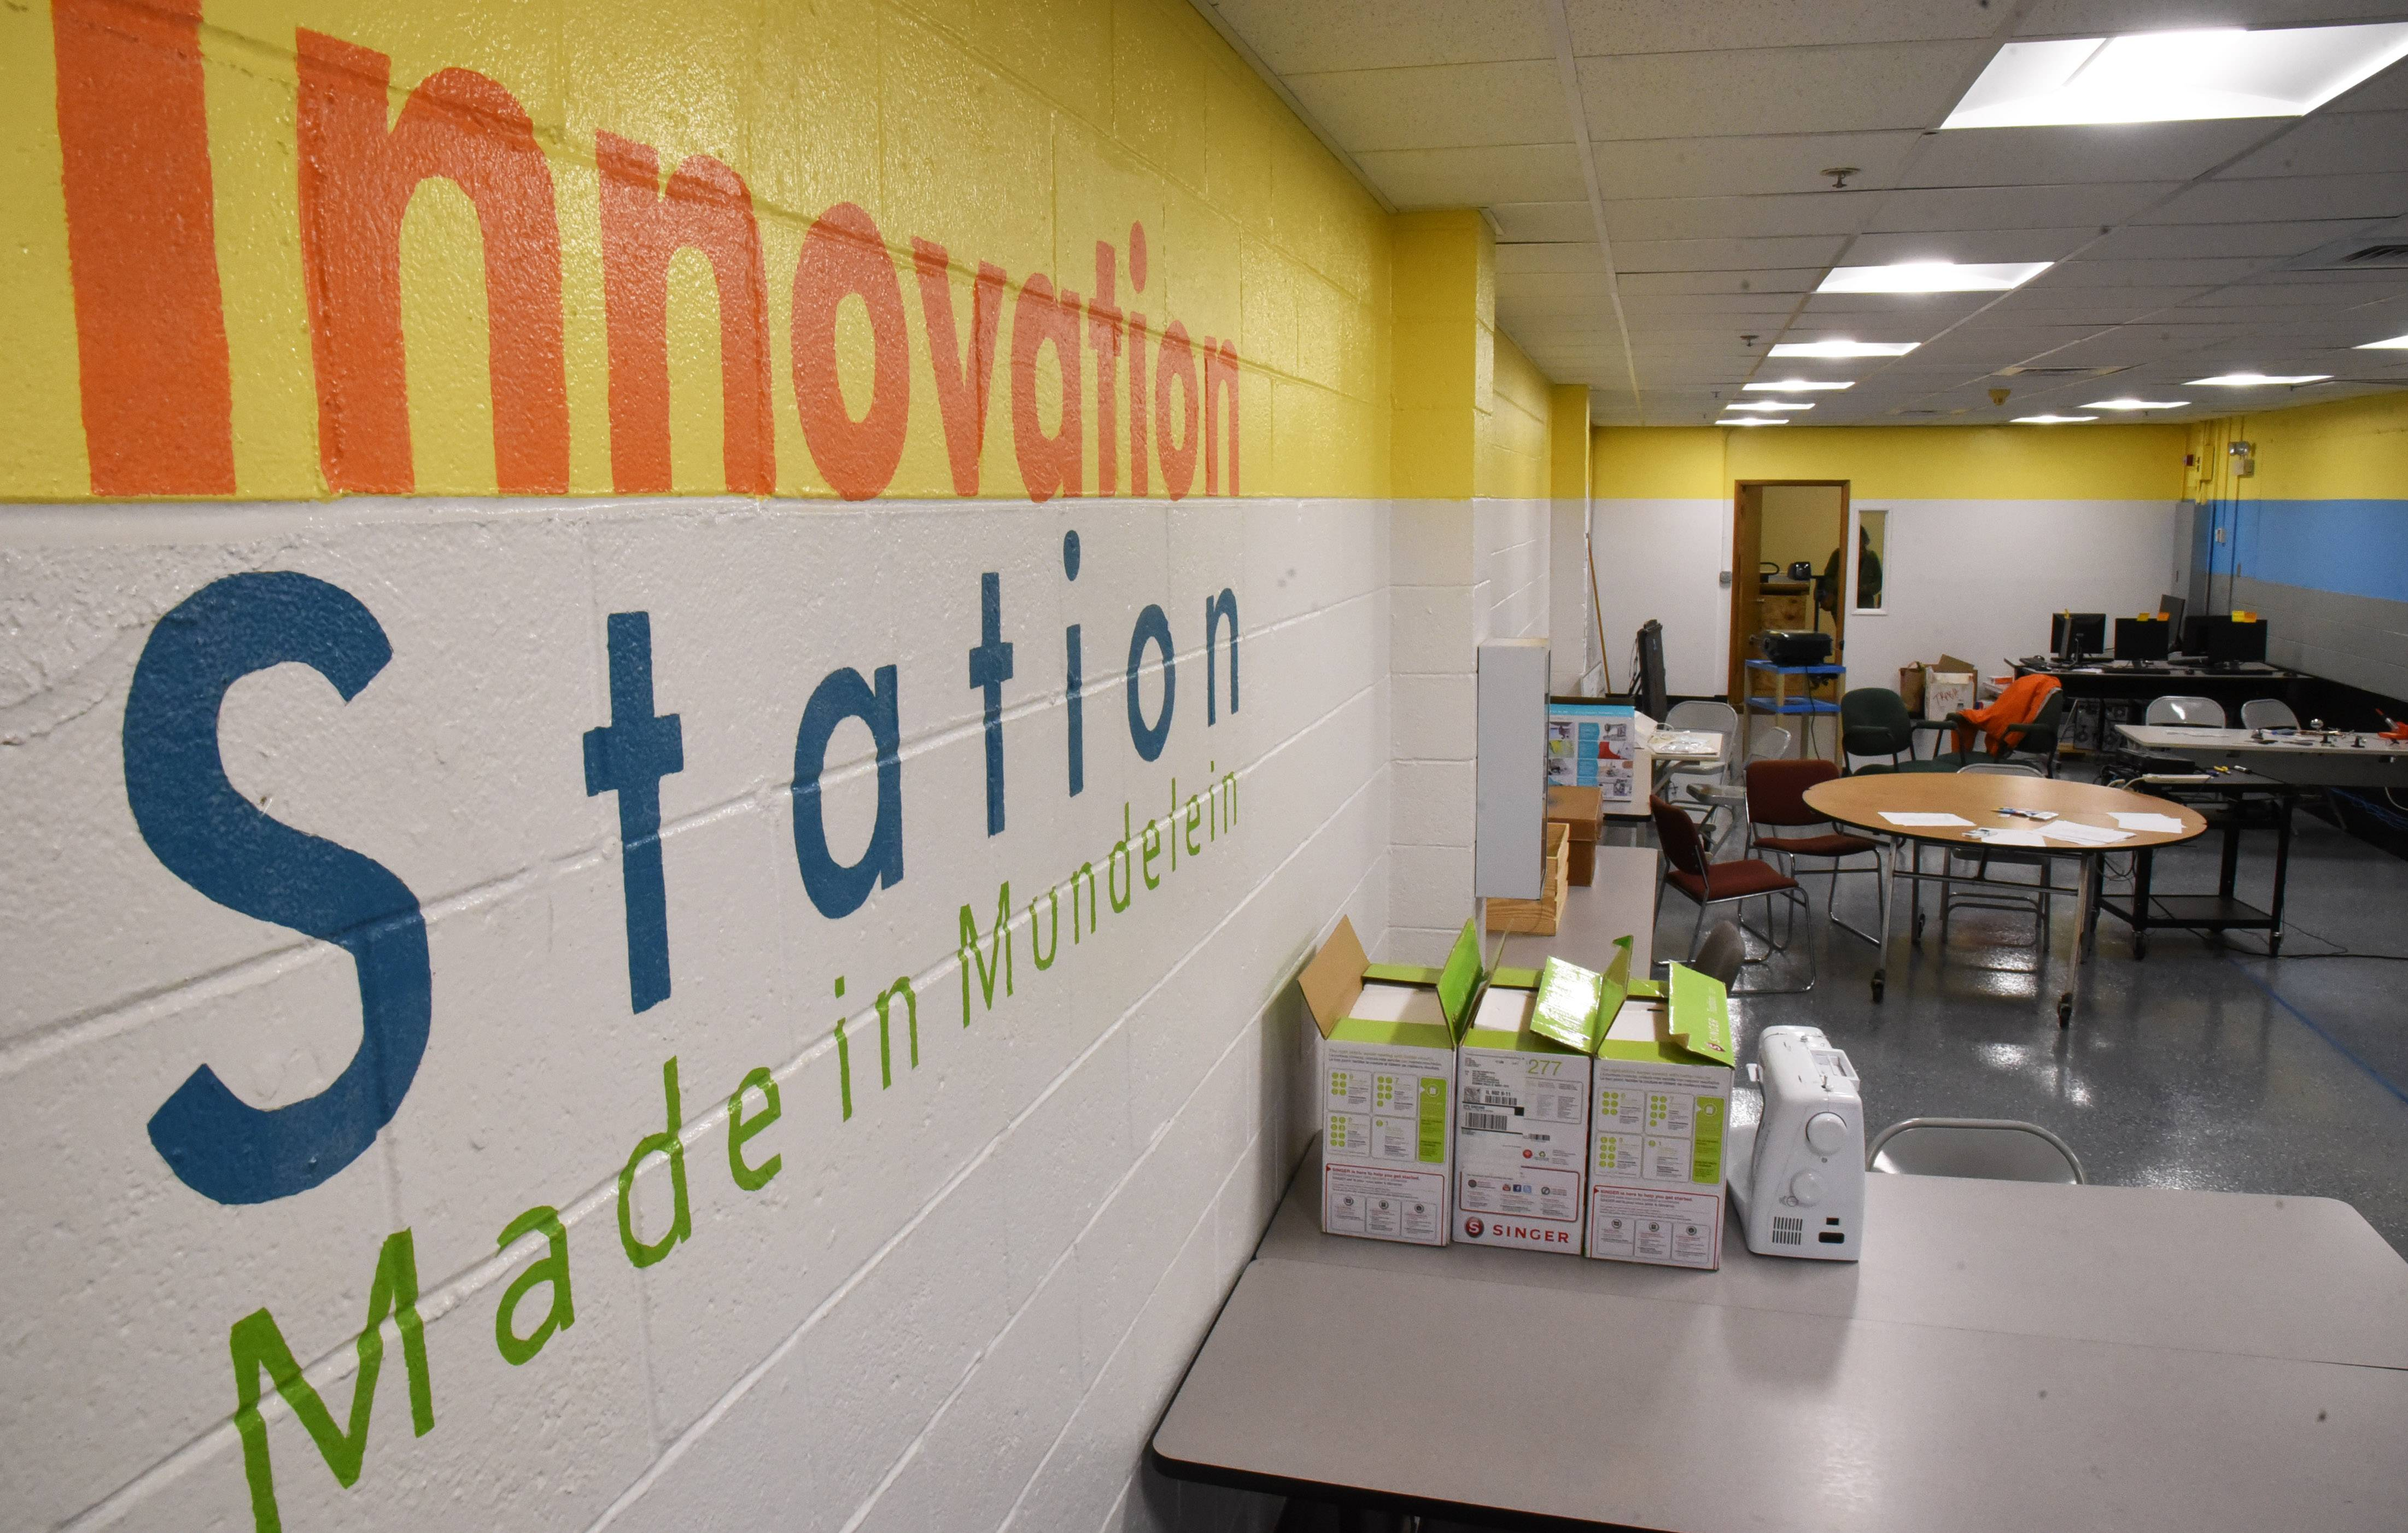 Mundelein District 75 converted a storage room at its office in downtown Mundelein into Innovation Station.